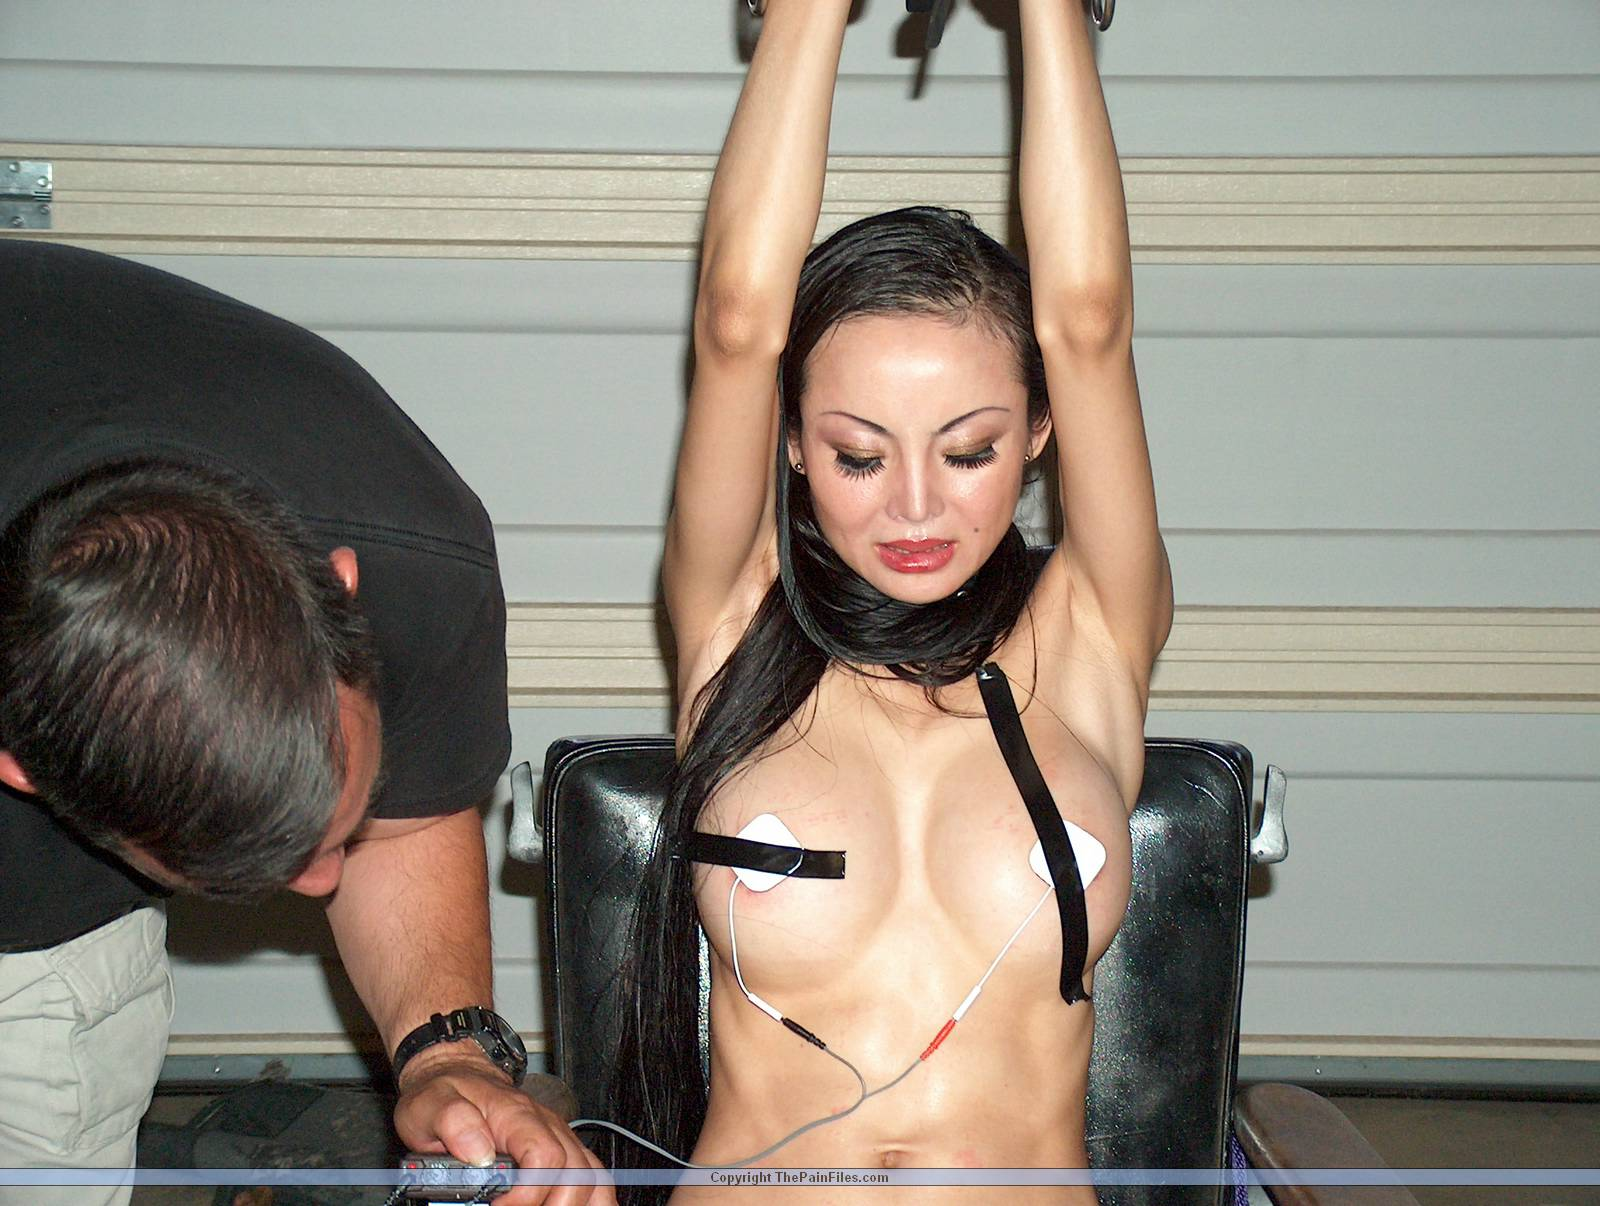 bdsm-and-asian-and-pain-maturenudeneighbor